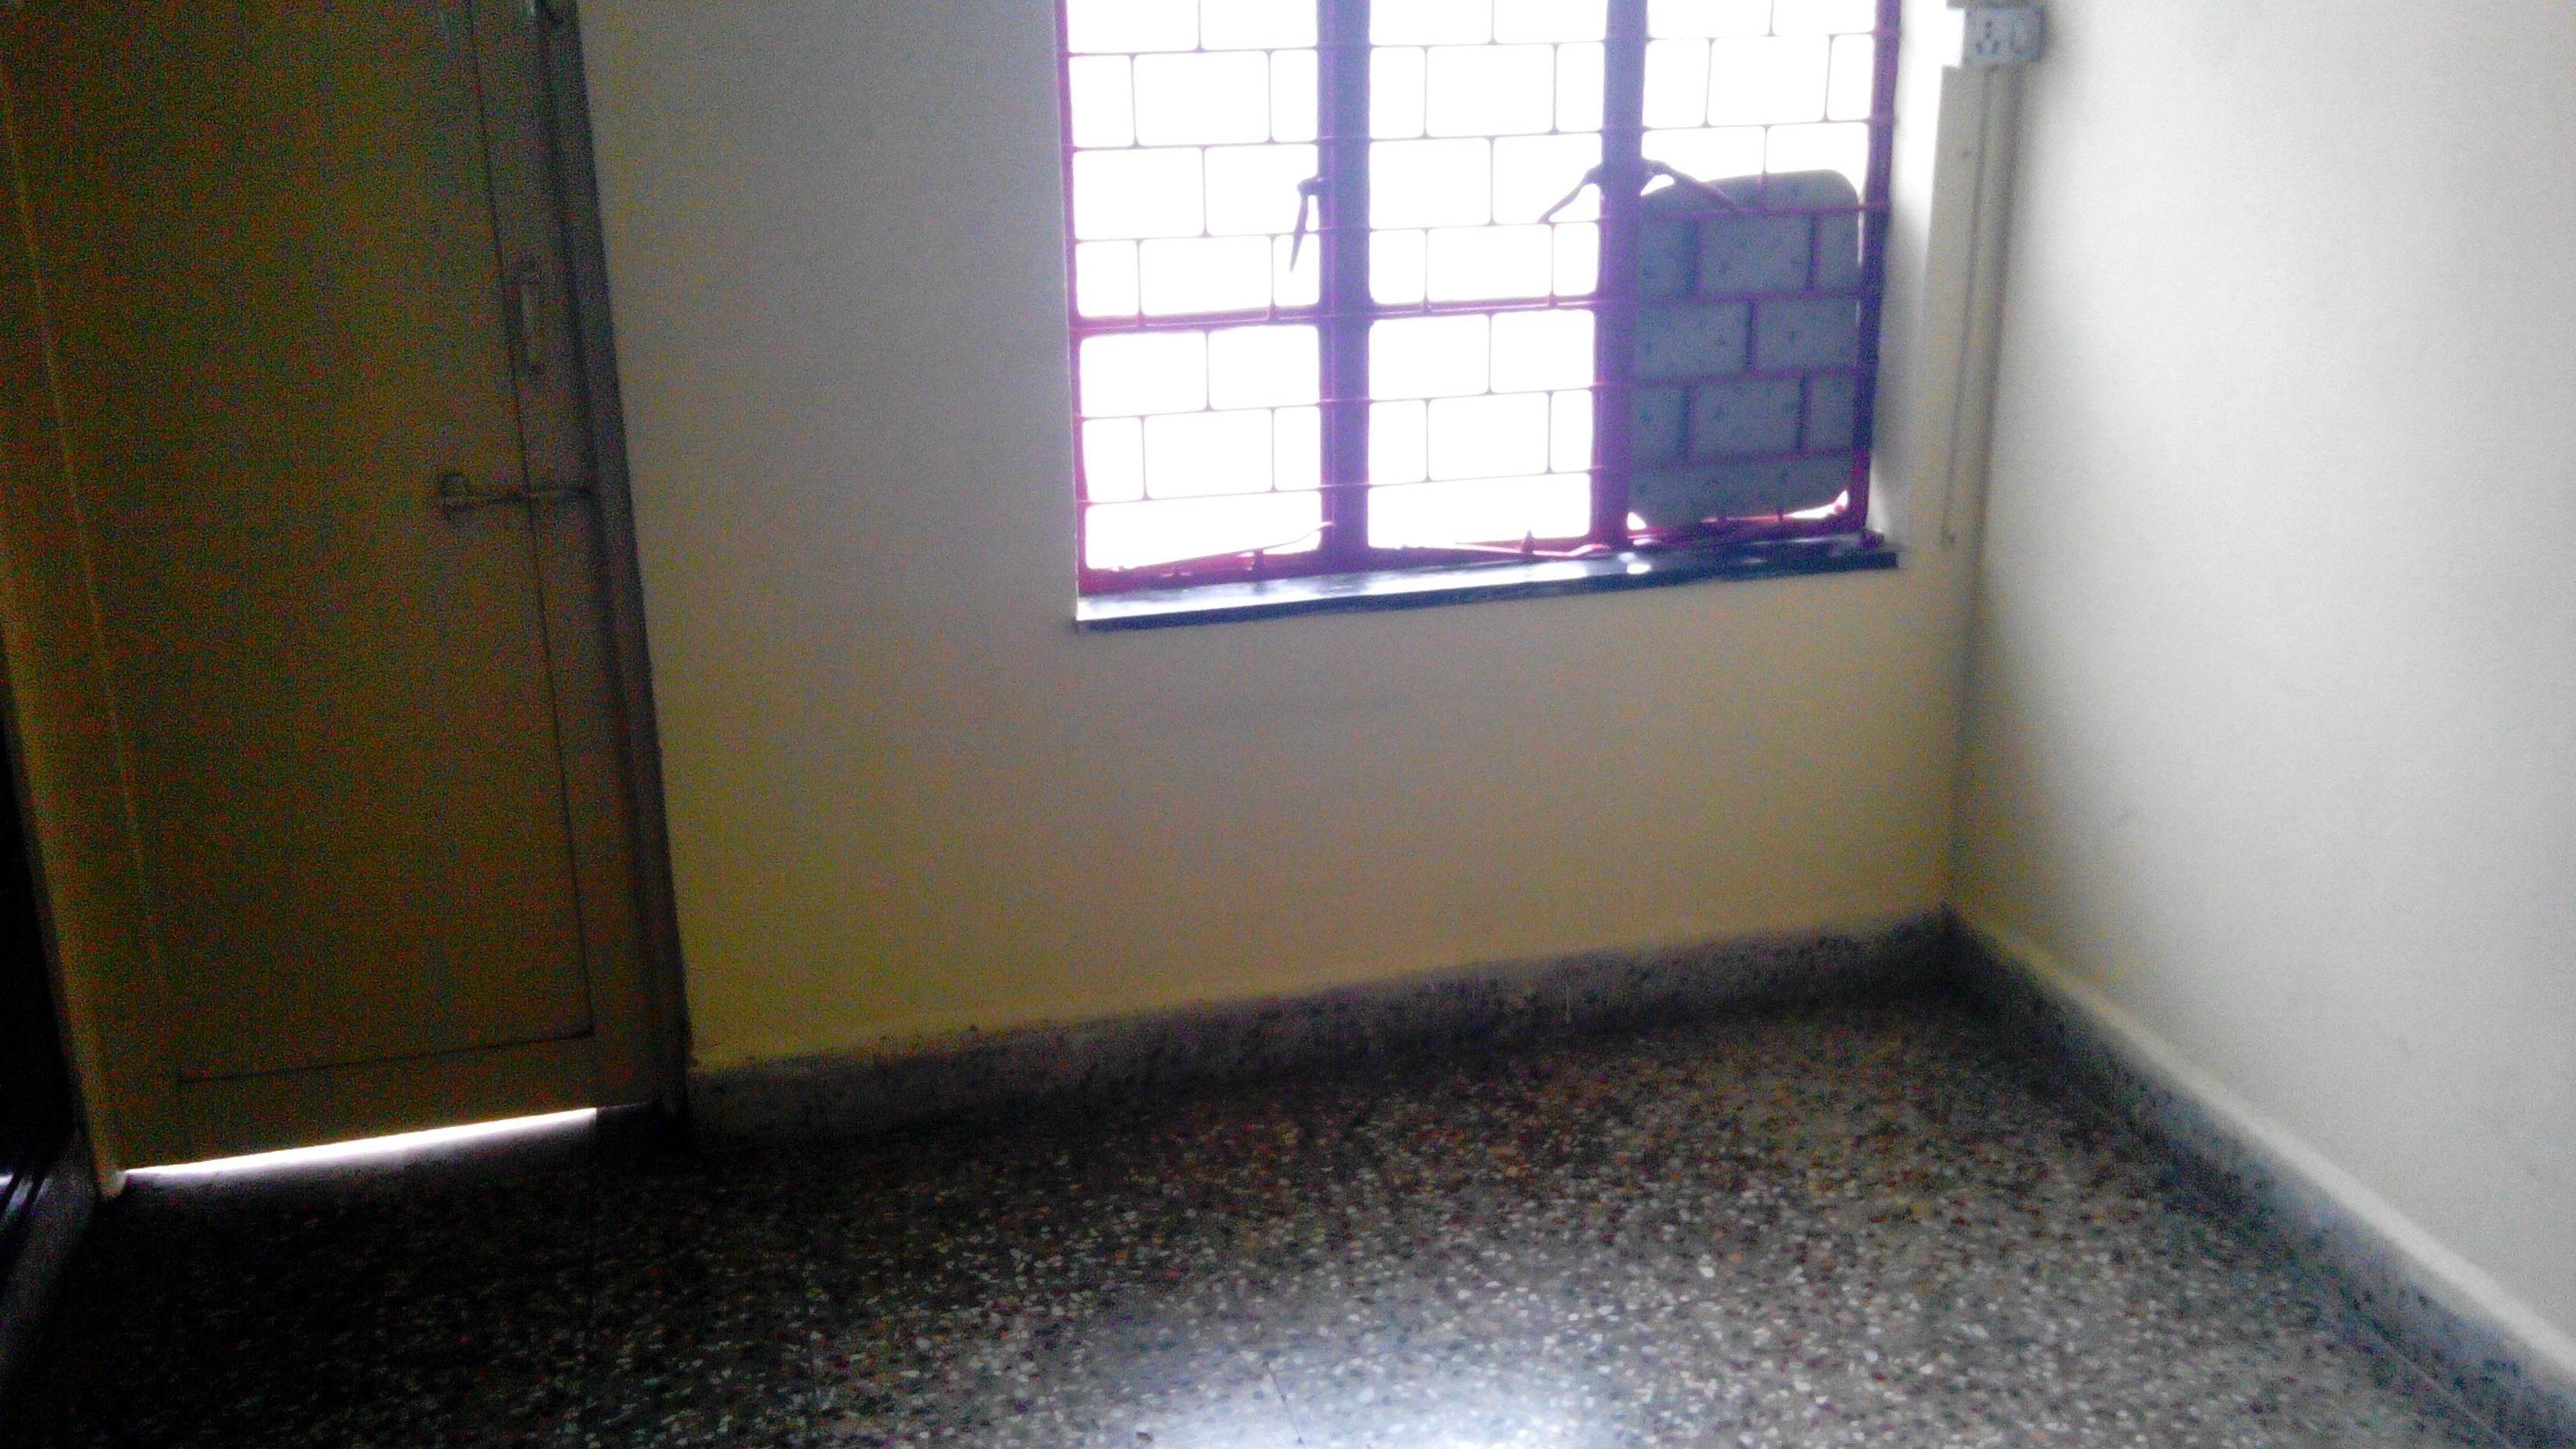 Its 1bhk posh semifurnished flat for rent 8000 at verma layout